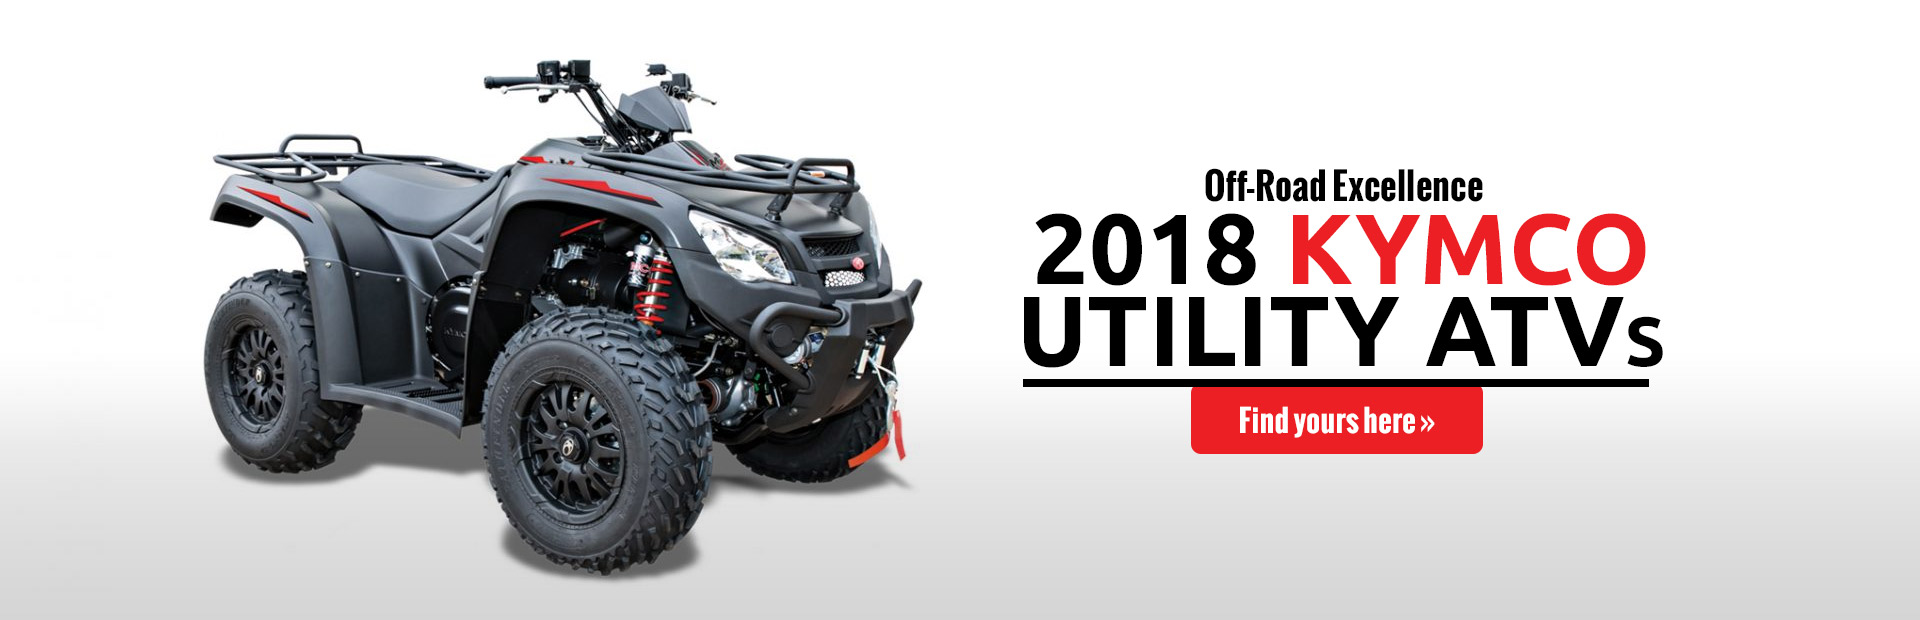 2018 KYMCO Utility ATVs: Click here to view the lineup.